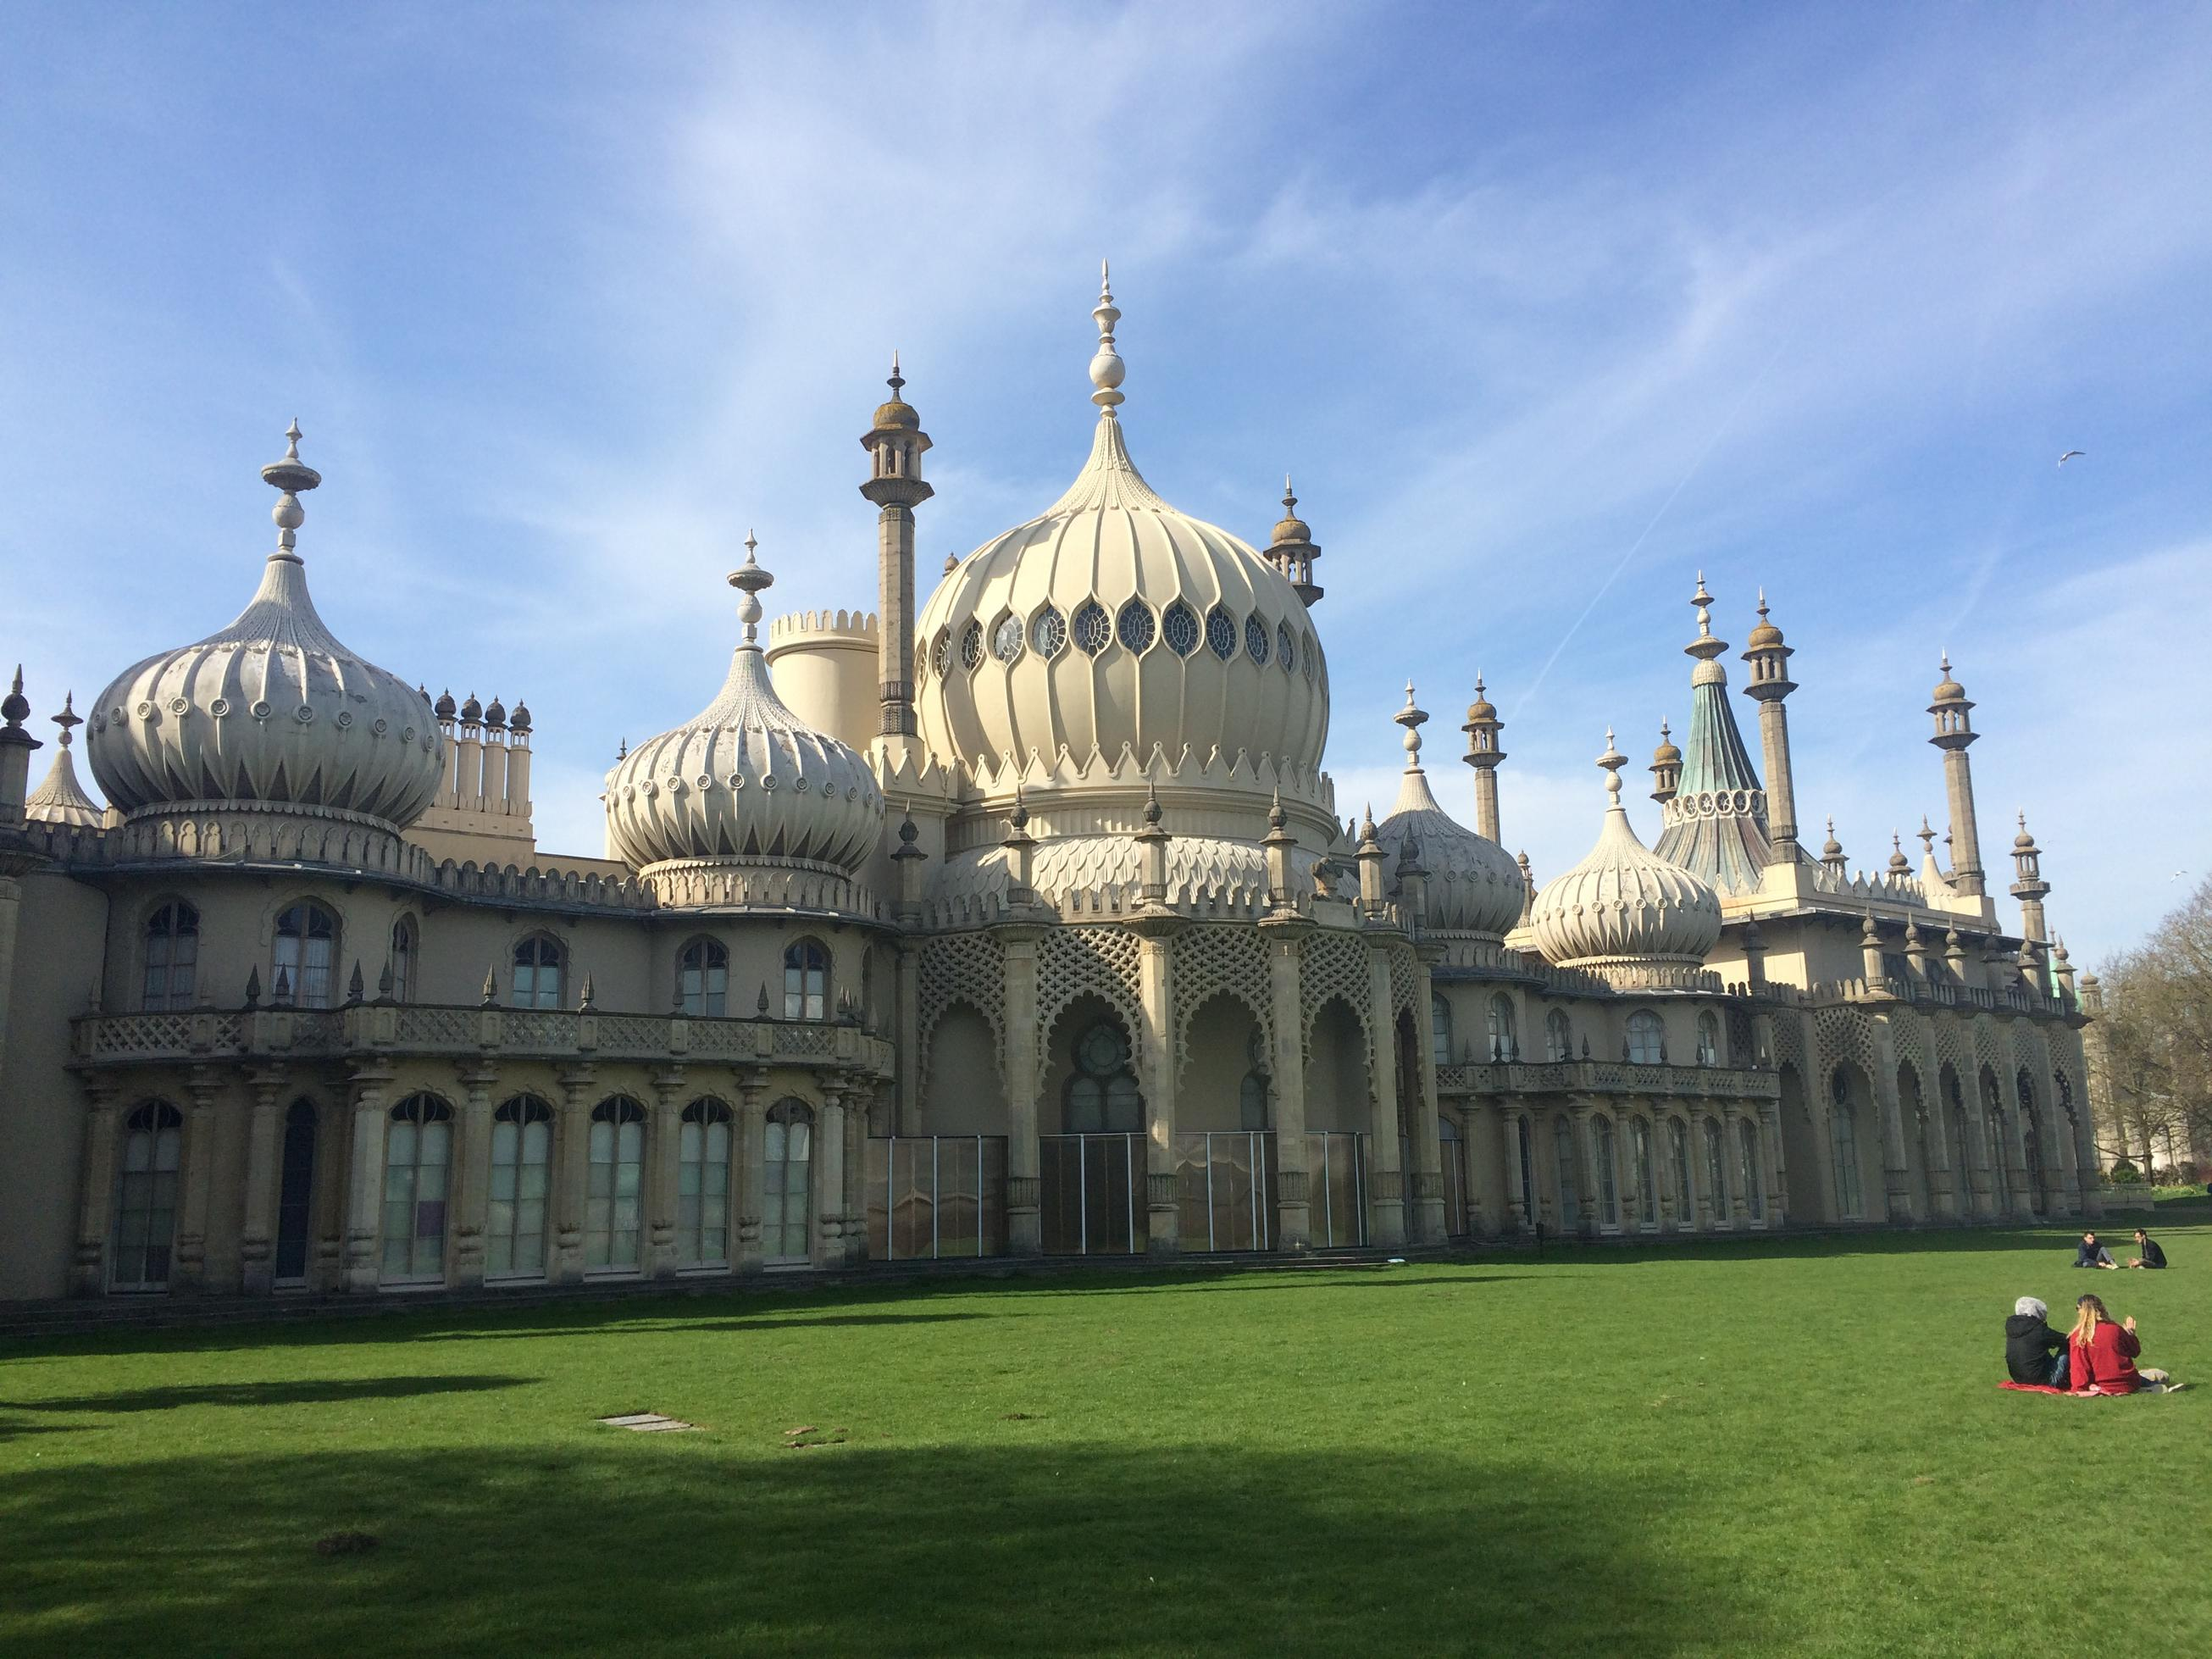 Our Brighton experience